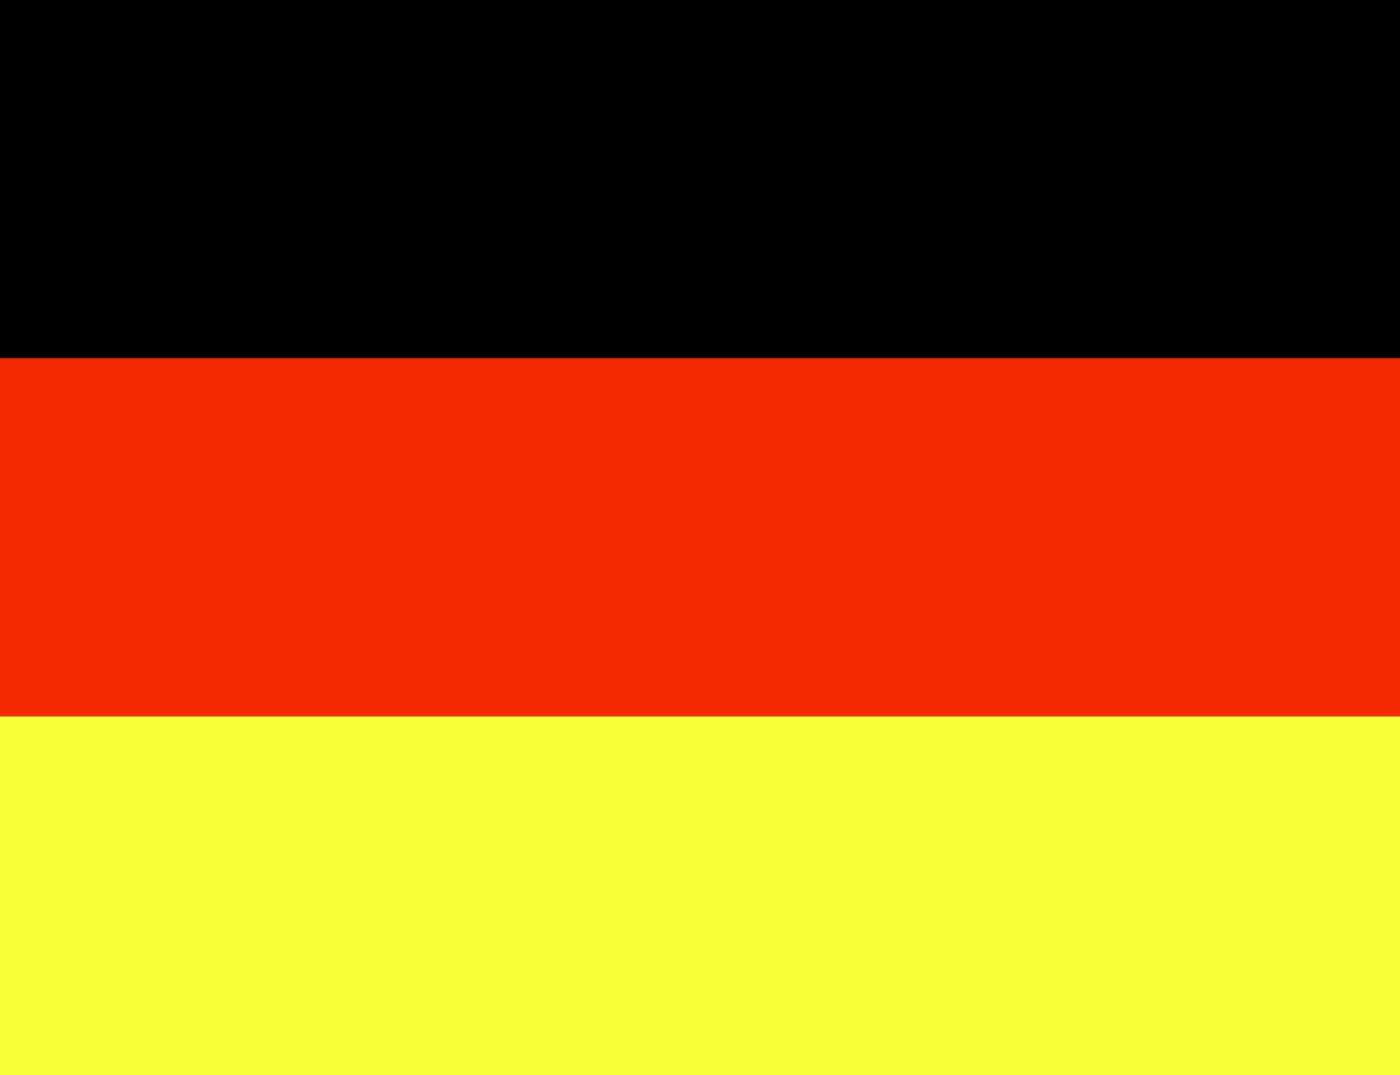 German Flag Wallpaper Android